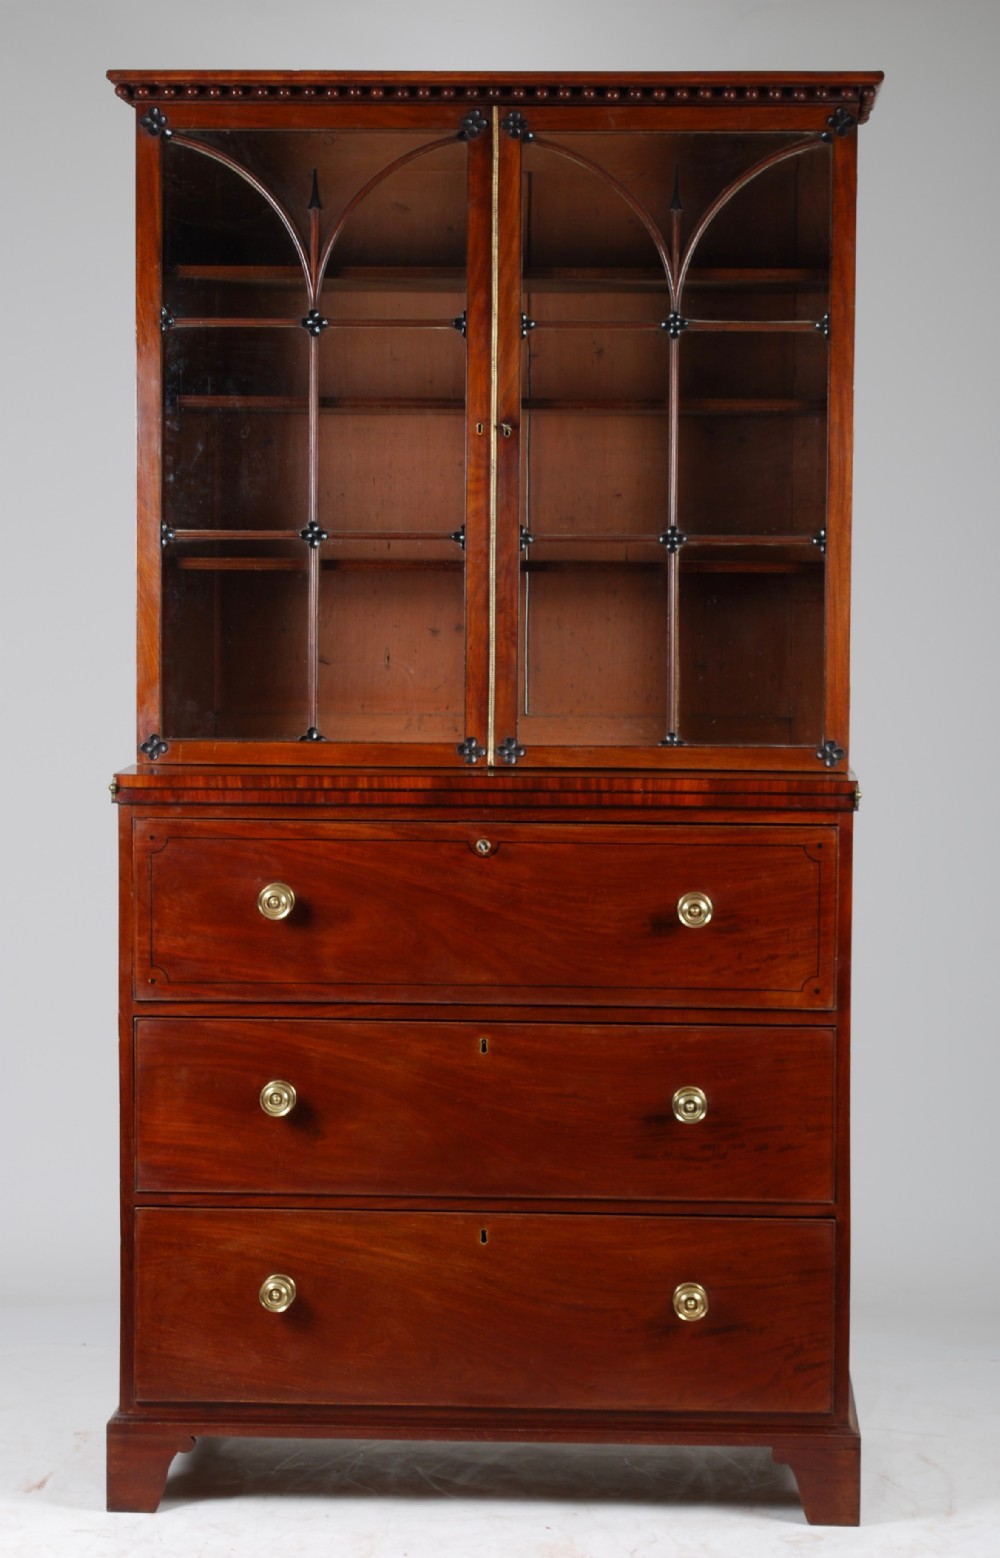 secretaire bookcase c1820